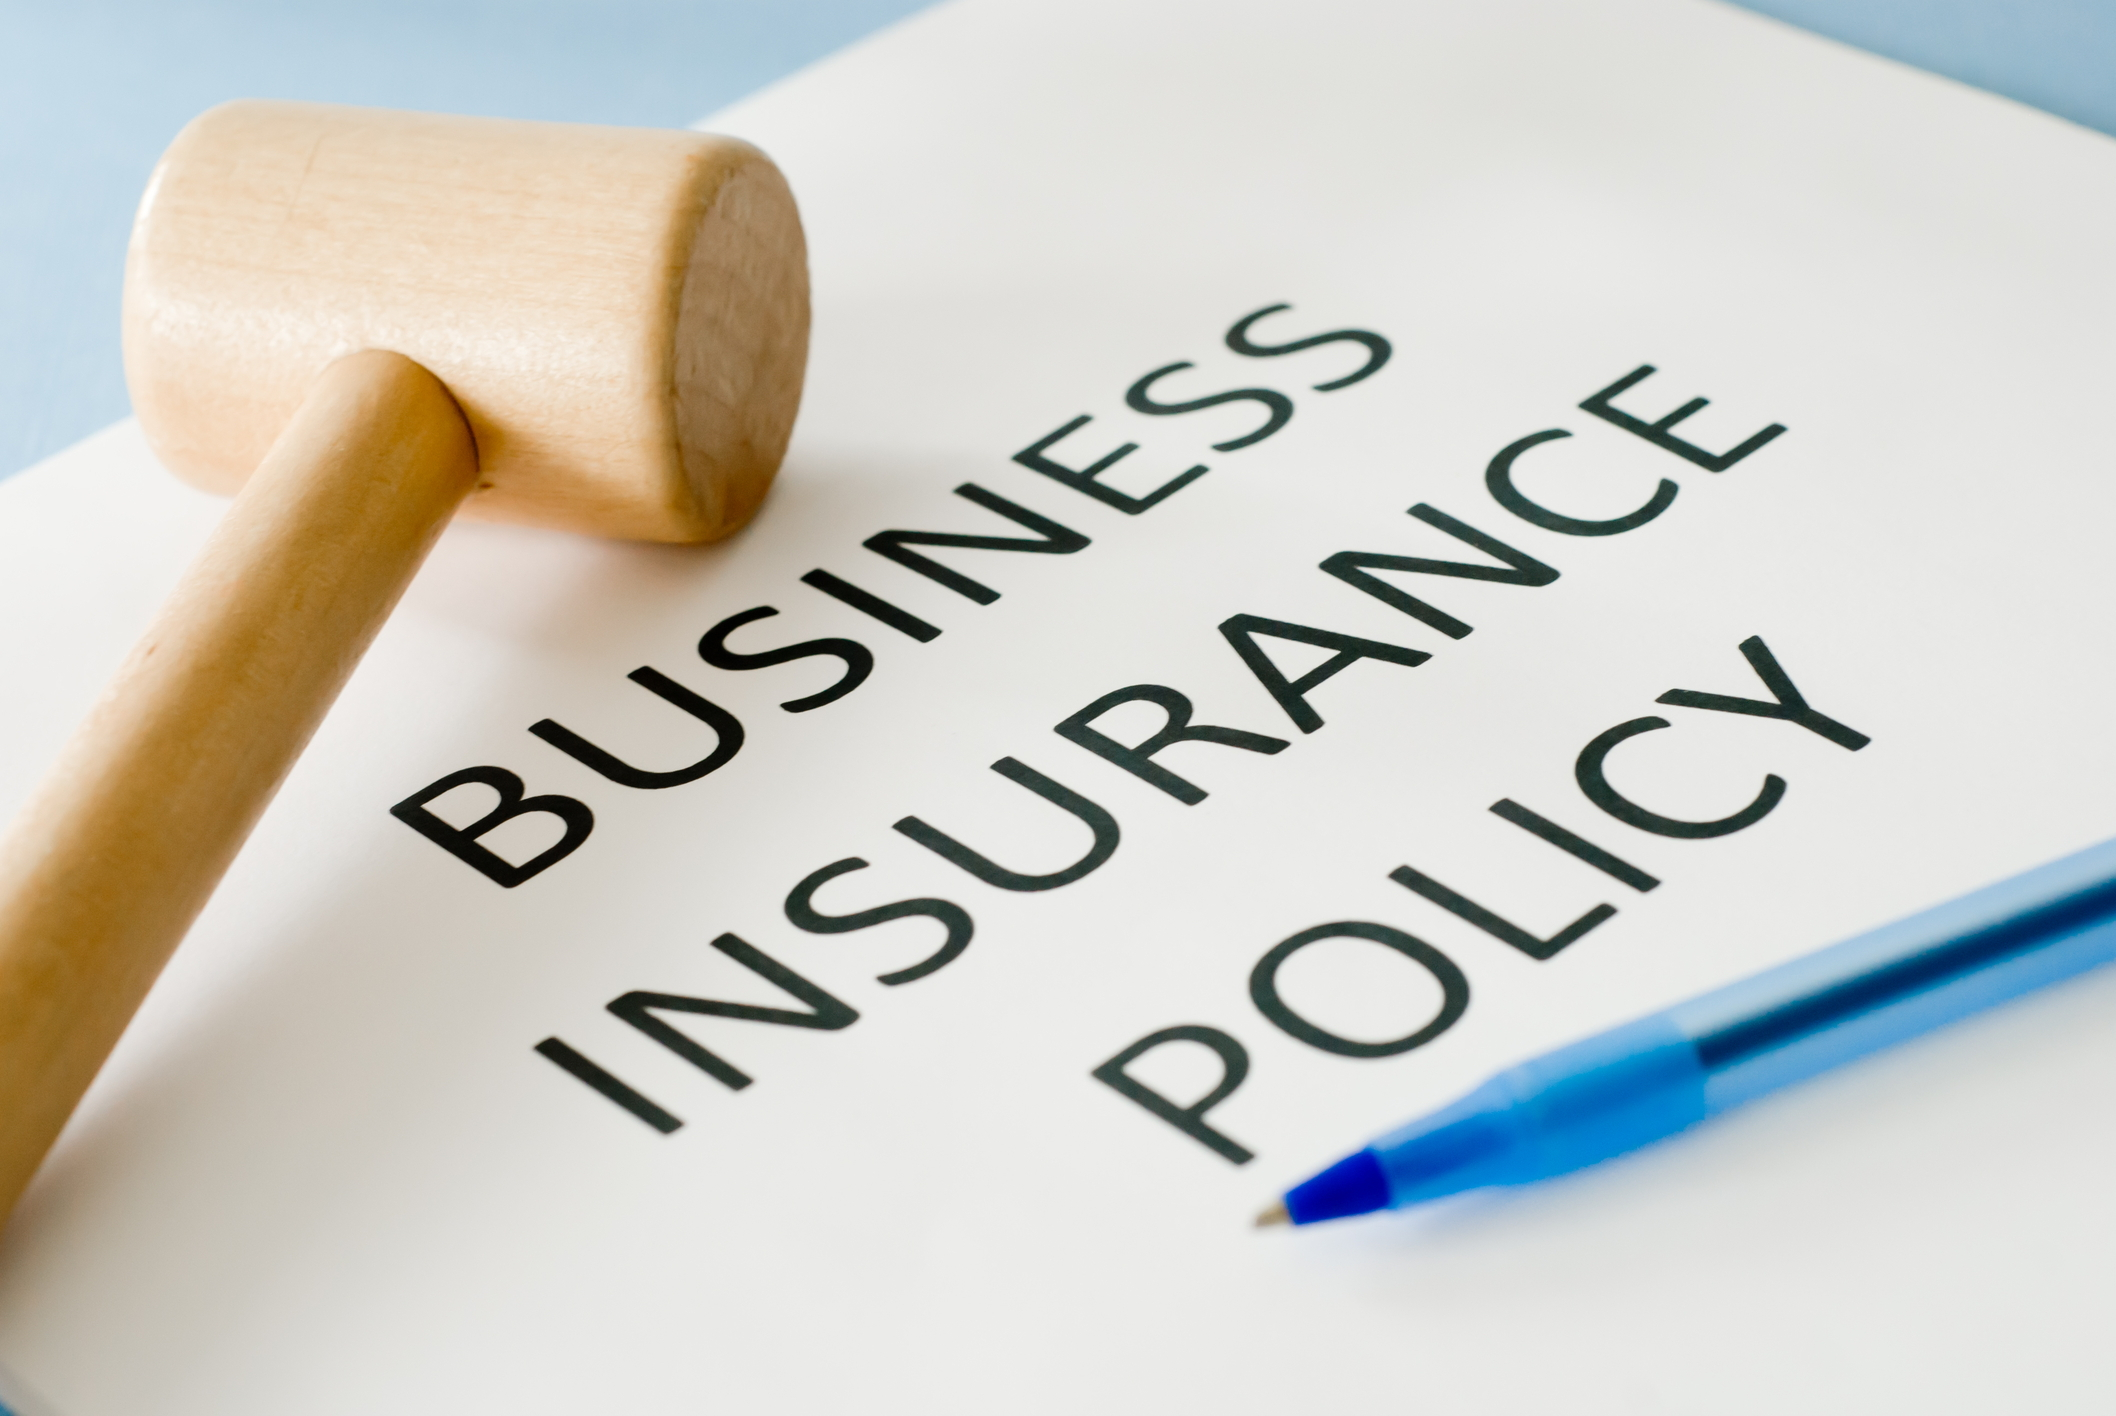 business insurance angrypolicyholders